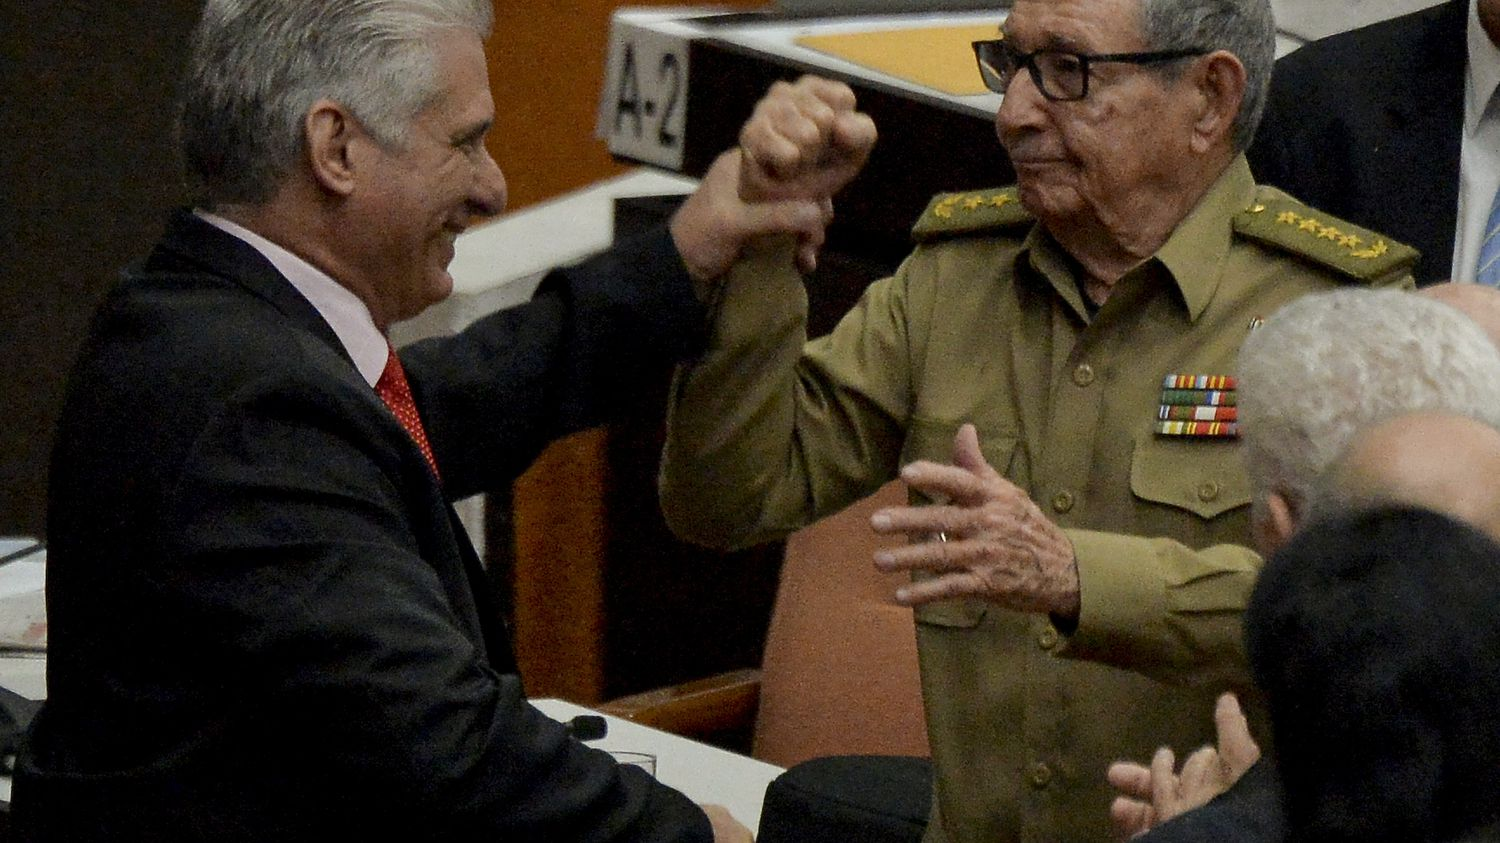 A page of history turns as Raul Castro bid farewell